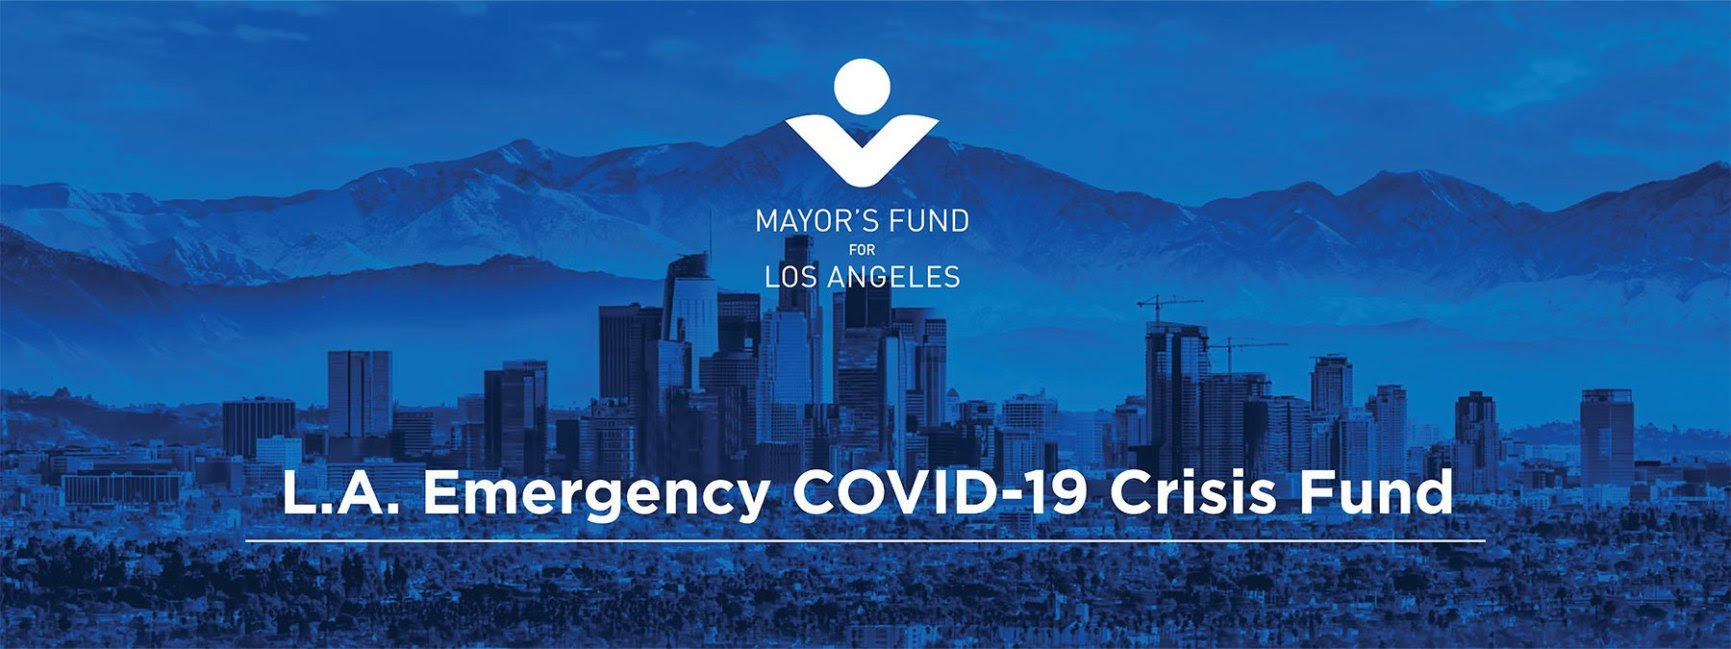 LA Emergency Fund Image